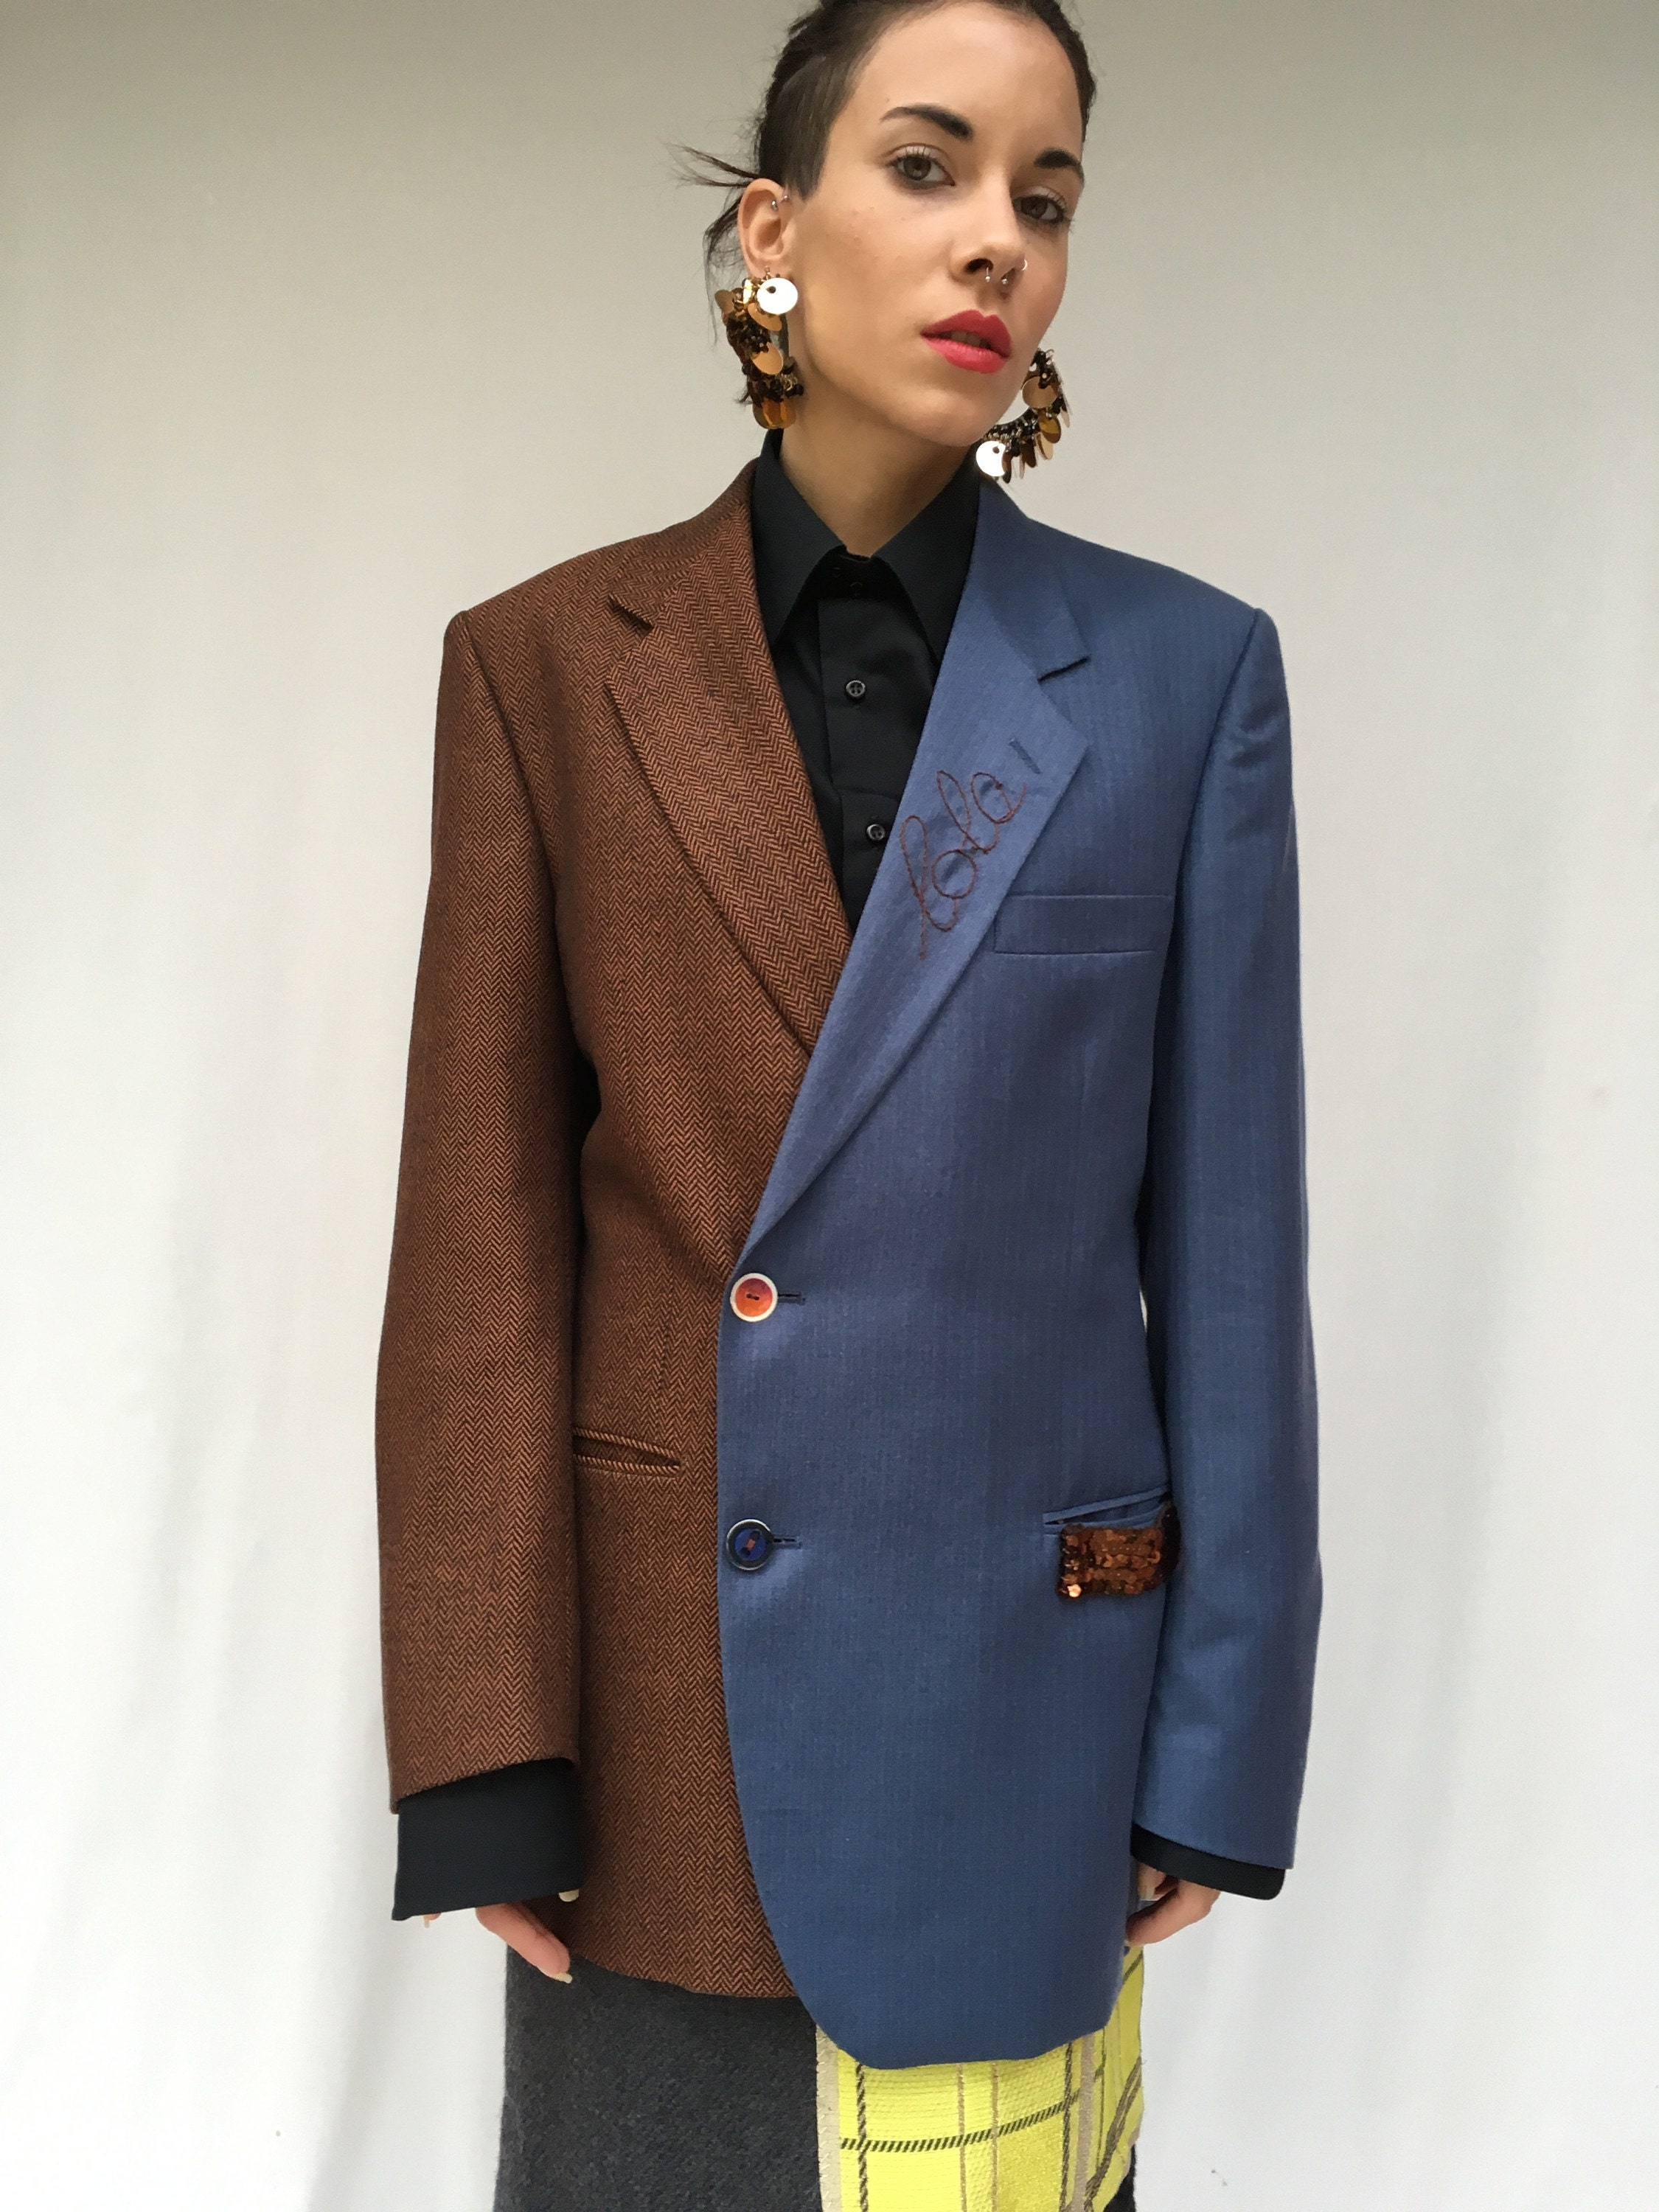 deconstructed jacket starting with selected vintage items. sustainability in the creative recovery of high quality waste clothing